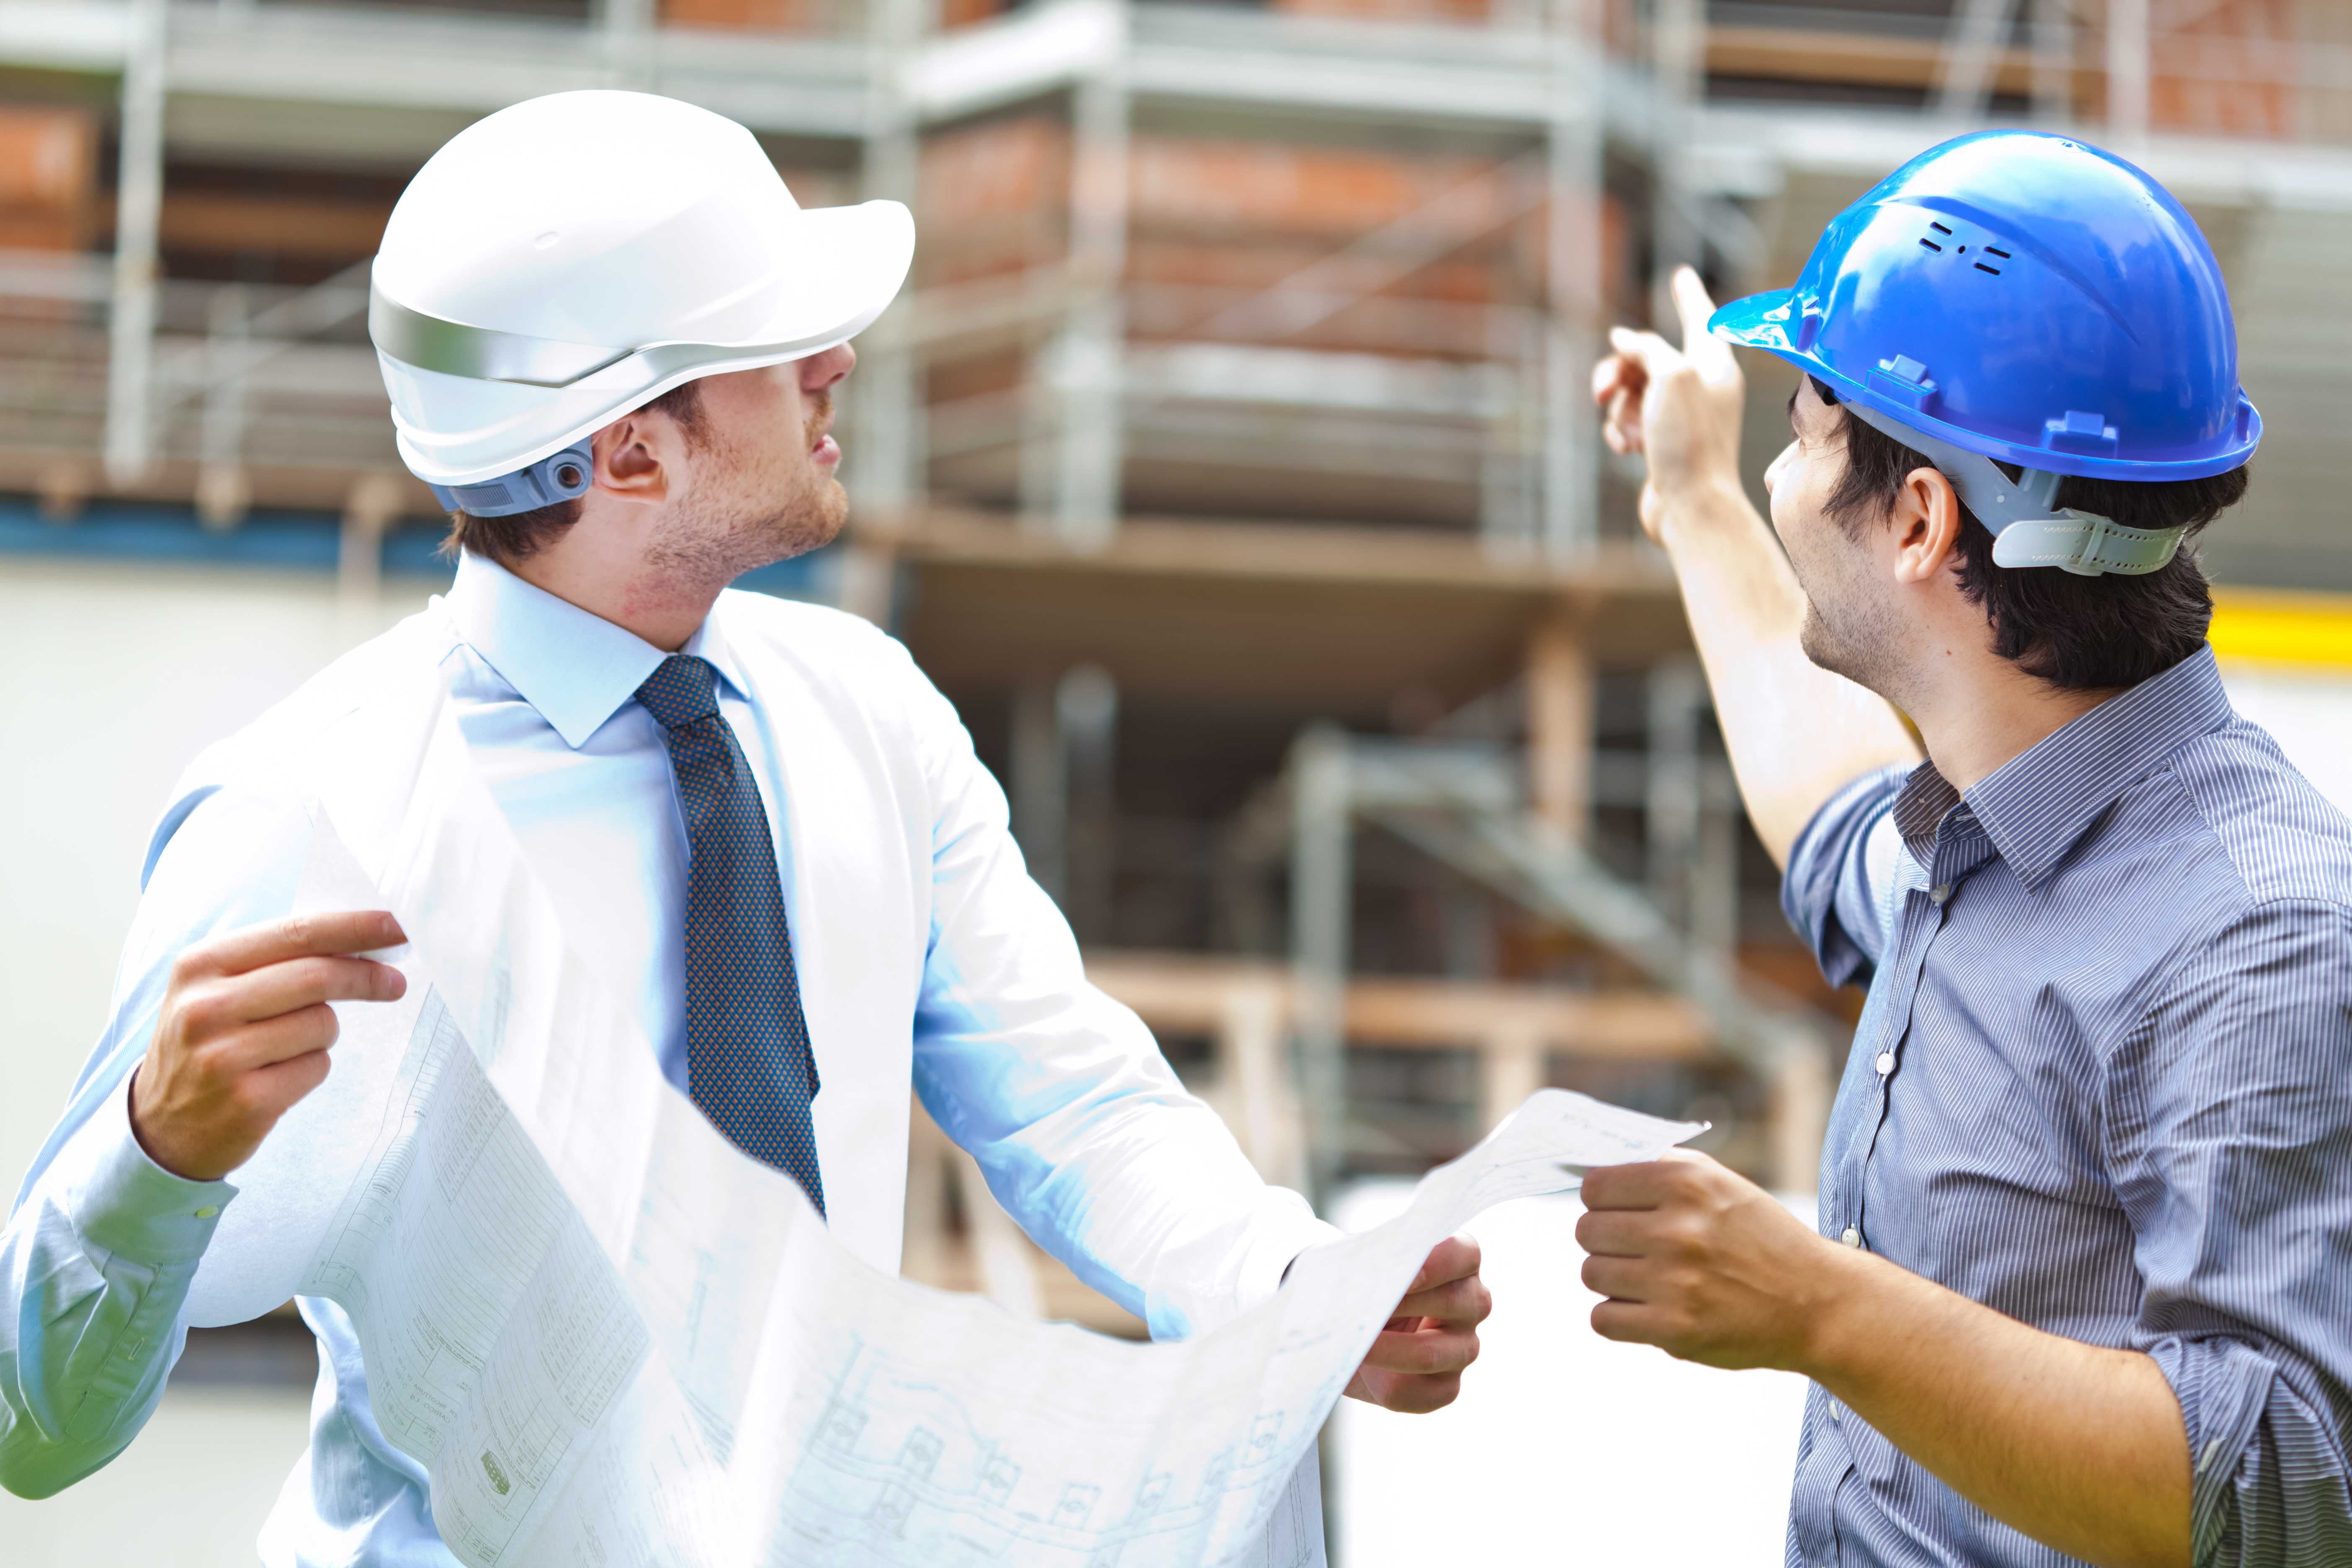 audit programme of contruction of property Property that is being held for sale in the ordinary course of business, or that is under construction or development for such sale (within the scope of ias 2 inventories) this means that properties acquired specifically for the purpose of subsequent disposal in the near future, or for development and resale, are excluded from the scope of ias 40.